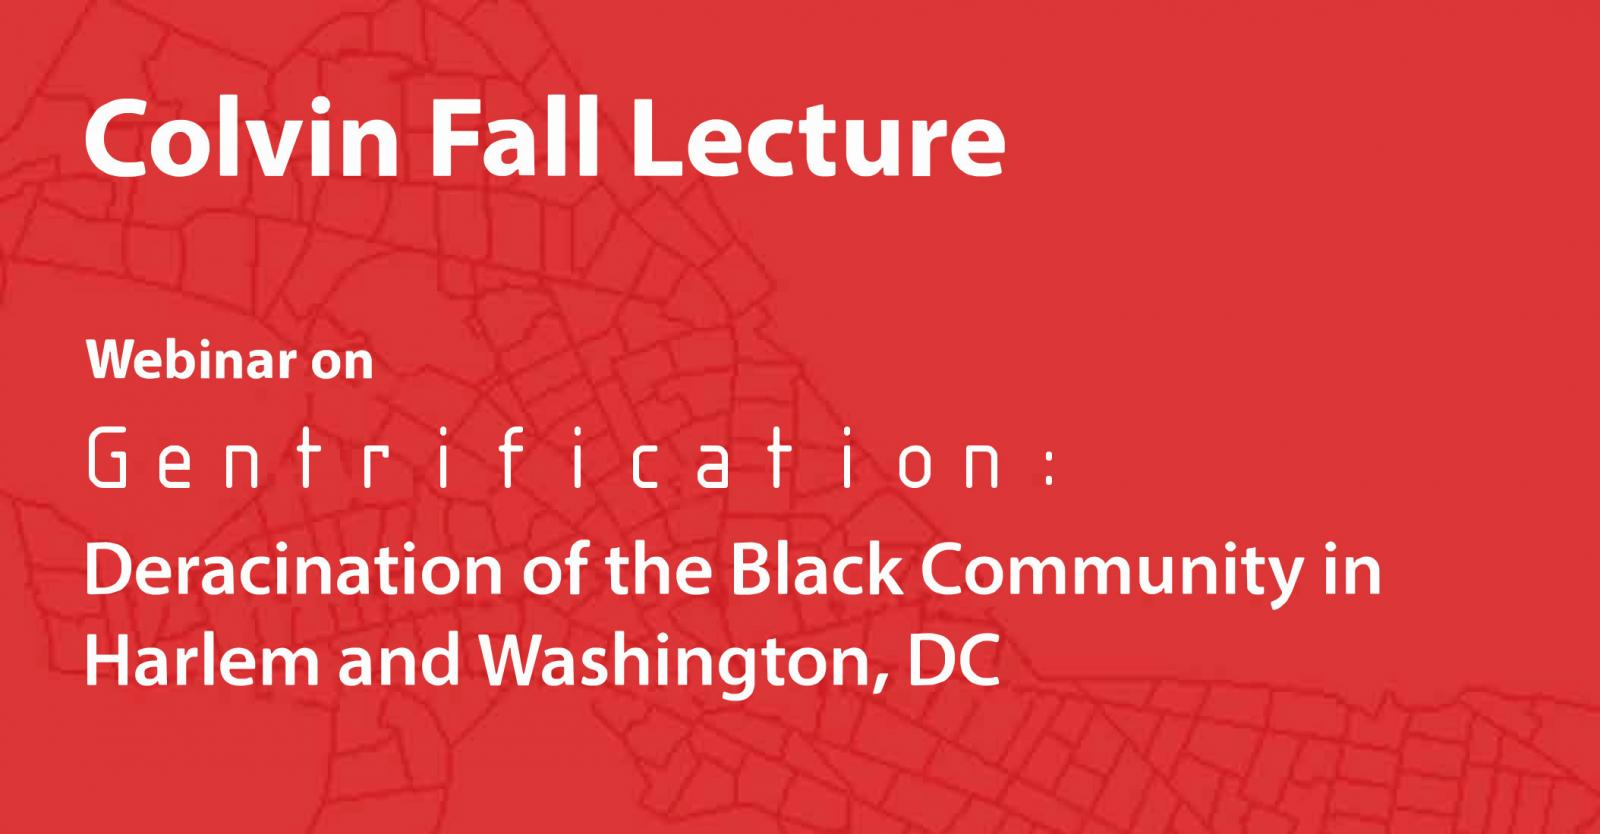 Colvin Fall Lecture. Webinar on Gentrification: Deracination of the Black Community in Harlem and Washington, DC